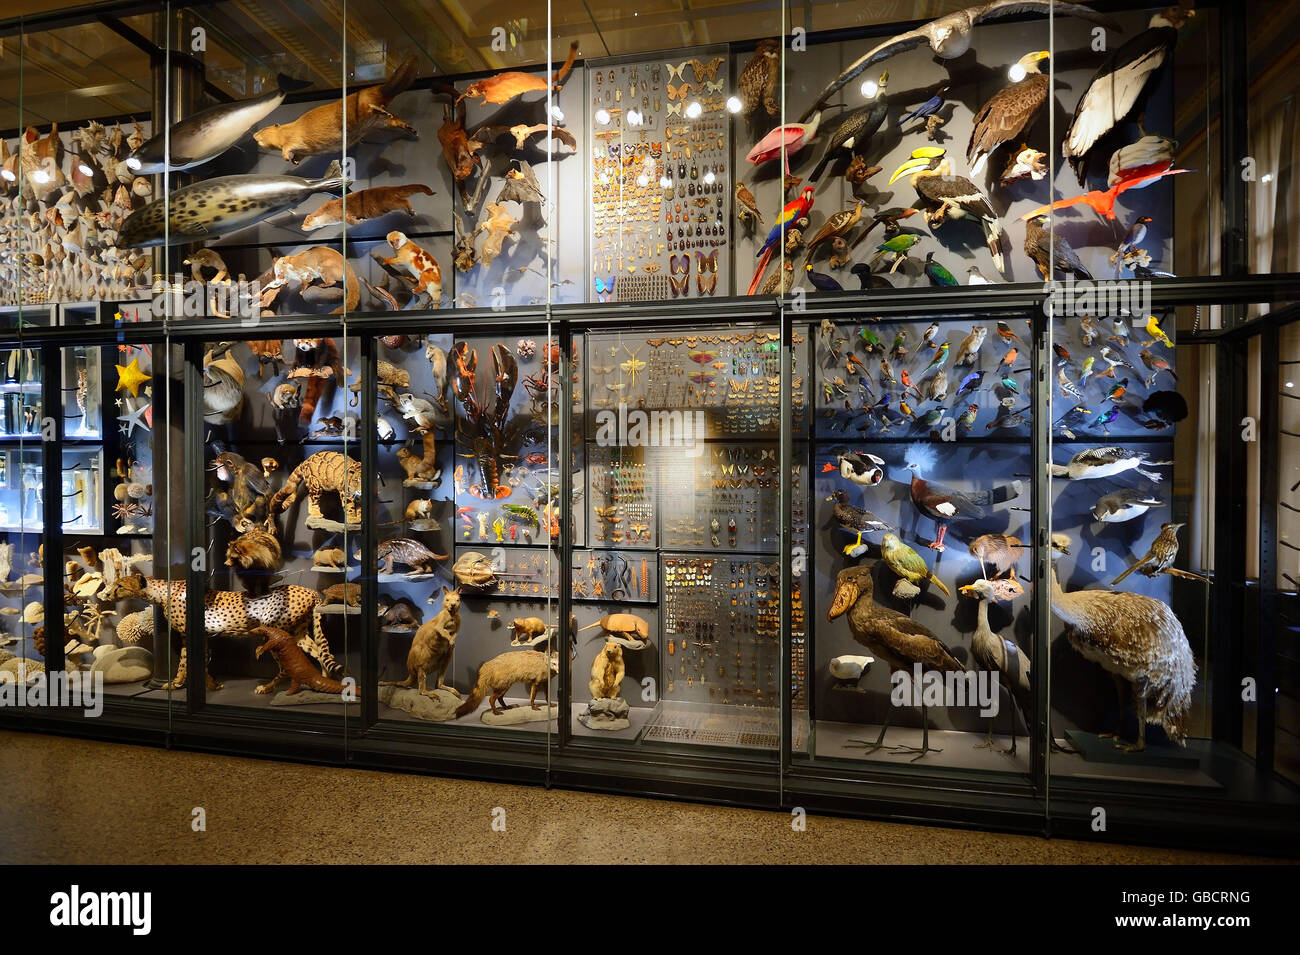 glass cabinets with exhibits, museum of natural history, Berlin, Germany - Stock Image